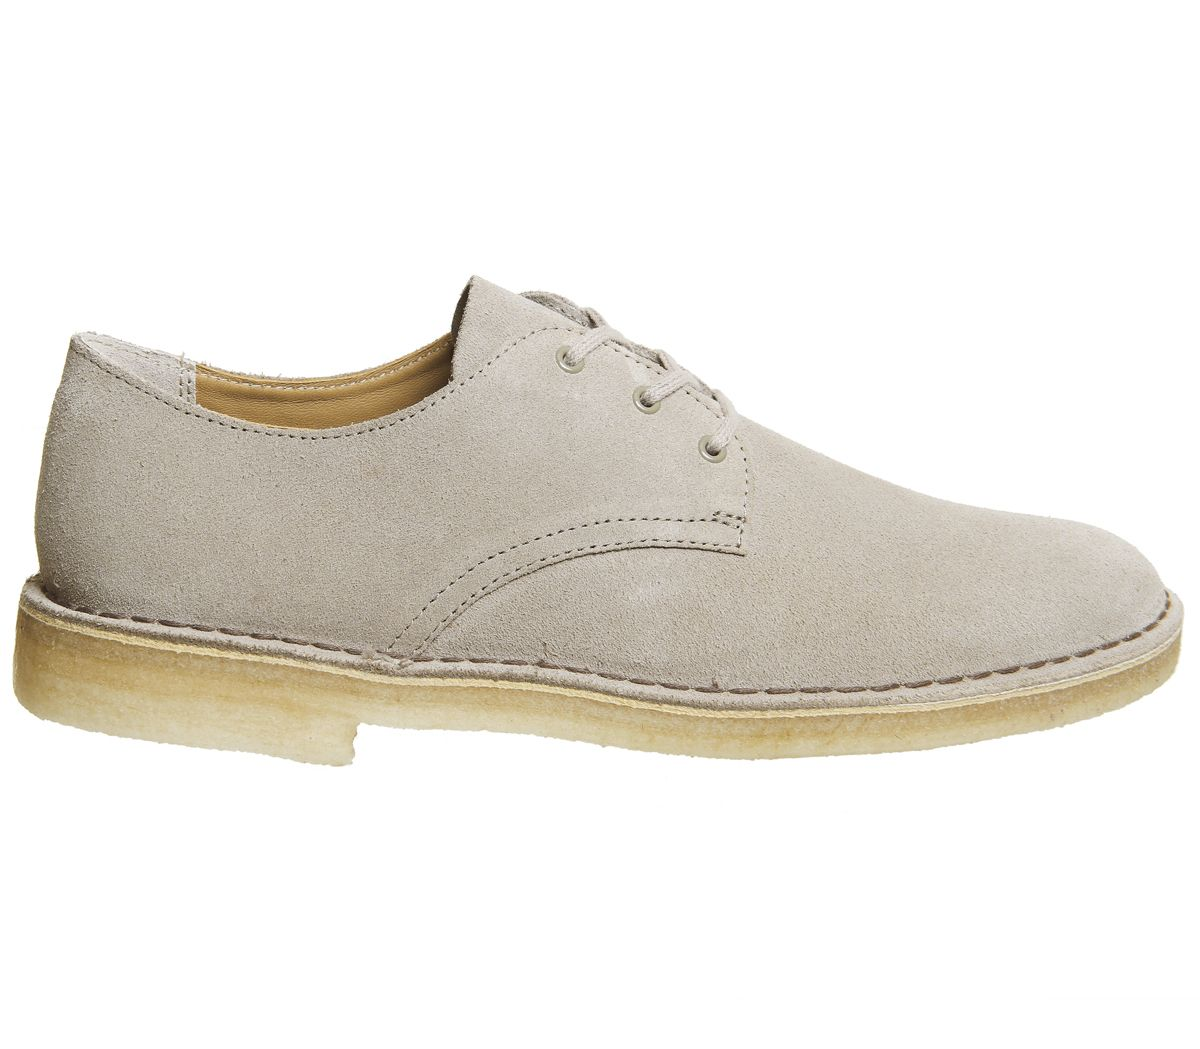 3fee7e713c15be Da Uomo Clarks Originals Clarks Desert CROSBY Scarpe sabbia in pelle ...